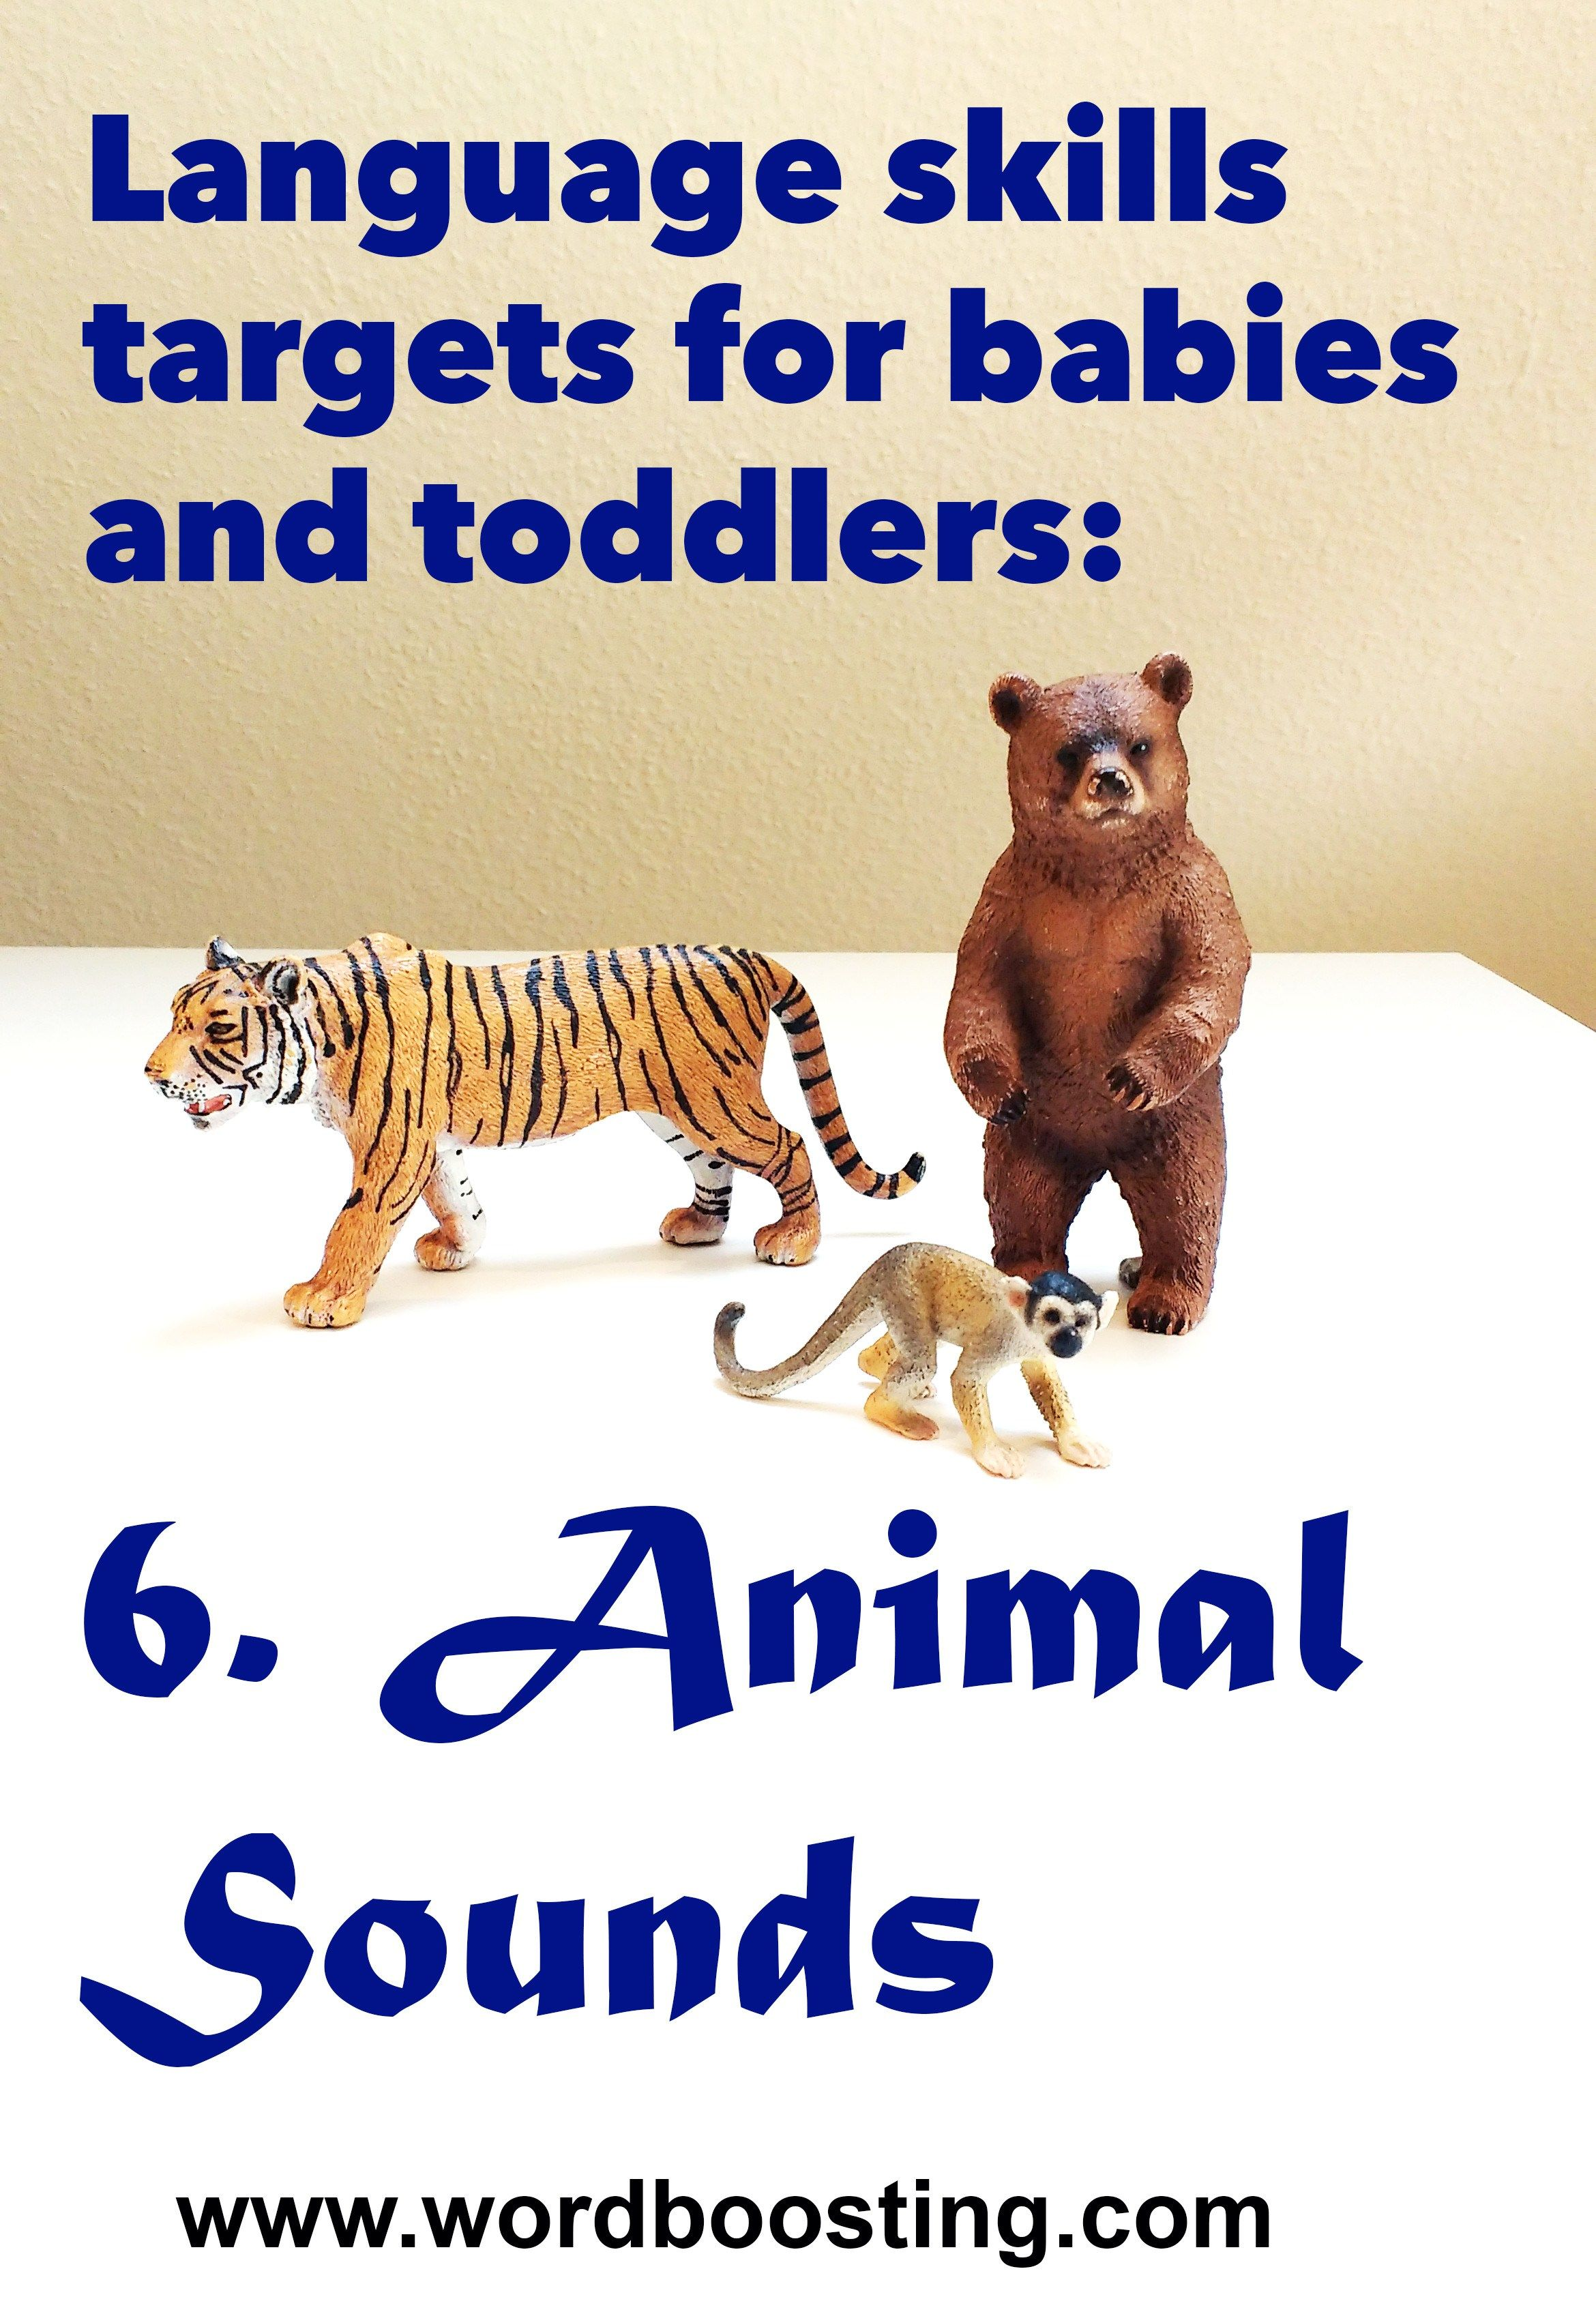 Making fun animal sounds is an effective way to kickstart early language skills. Check out these fun ideas to get babies and toddlers talking.